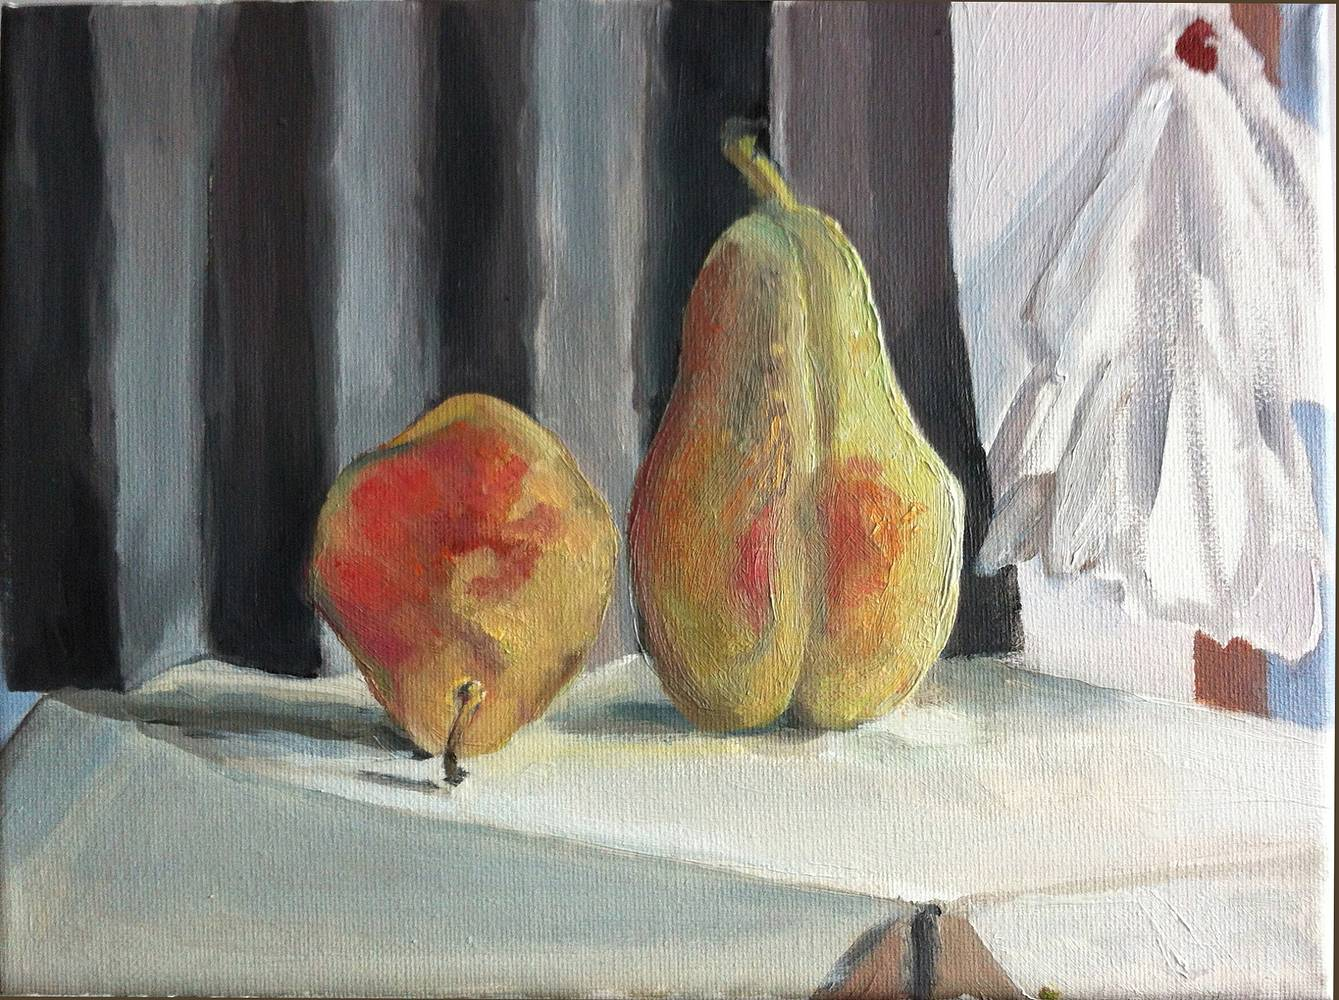 Oil painting PEARS WITH FOLDED PAPER by Anastasia O'melveny